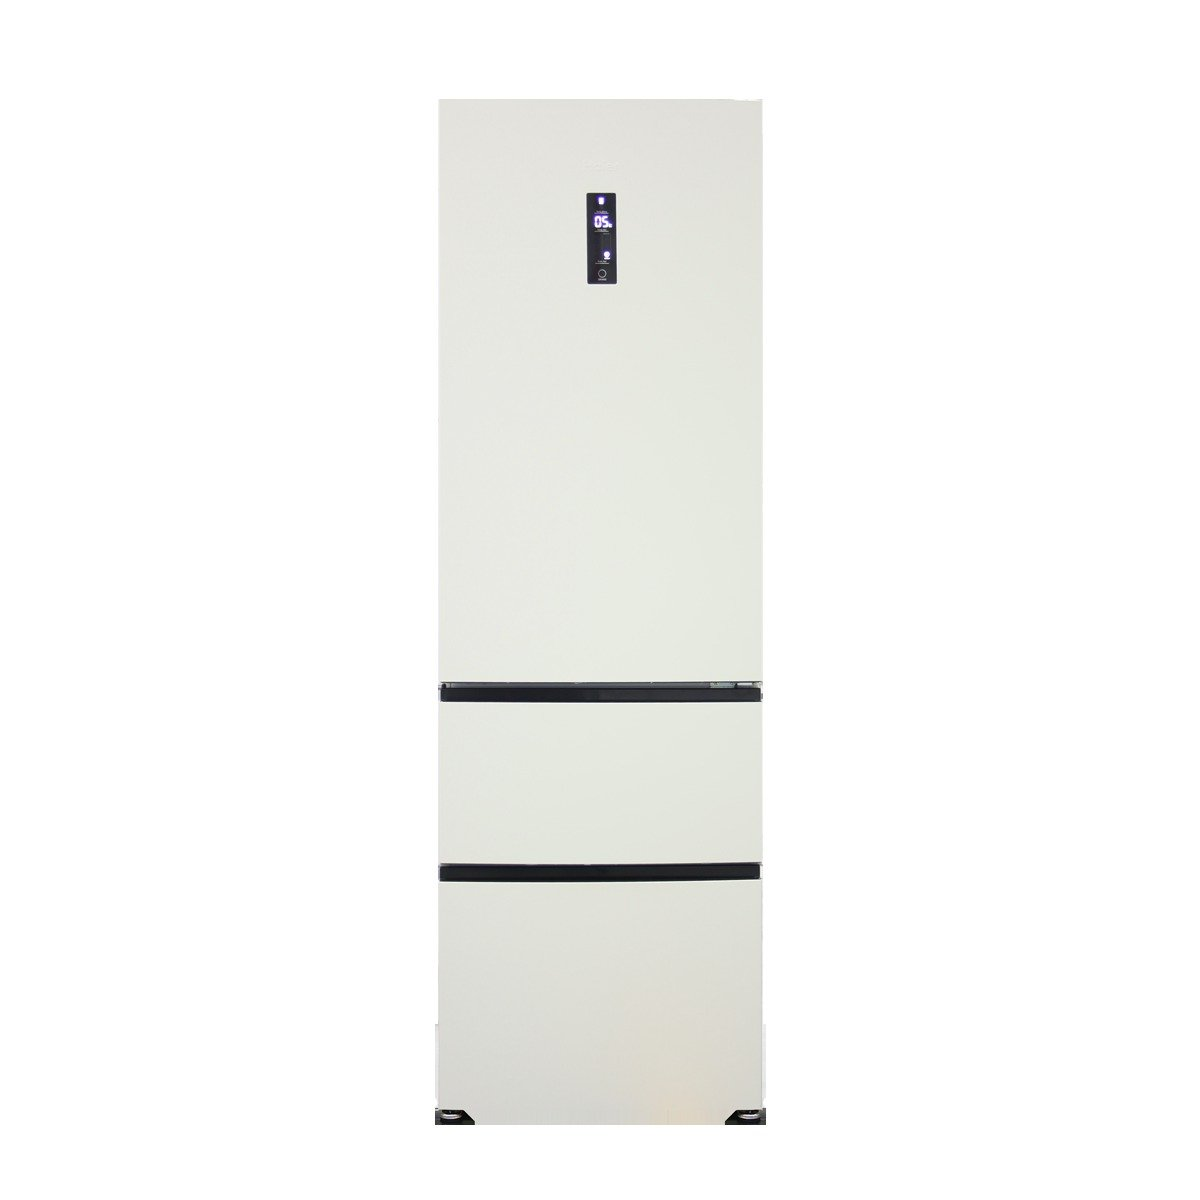 Image of Haier A2FE635CCJ American Fridge Freezer - Cream - Installation